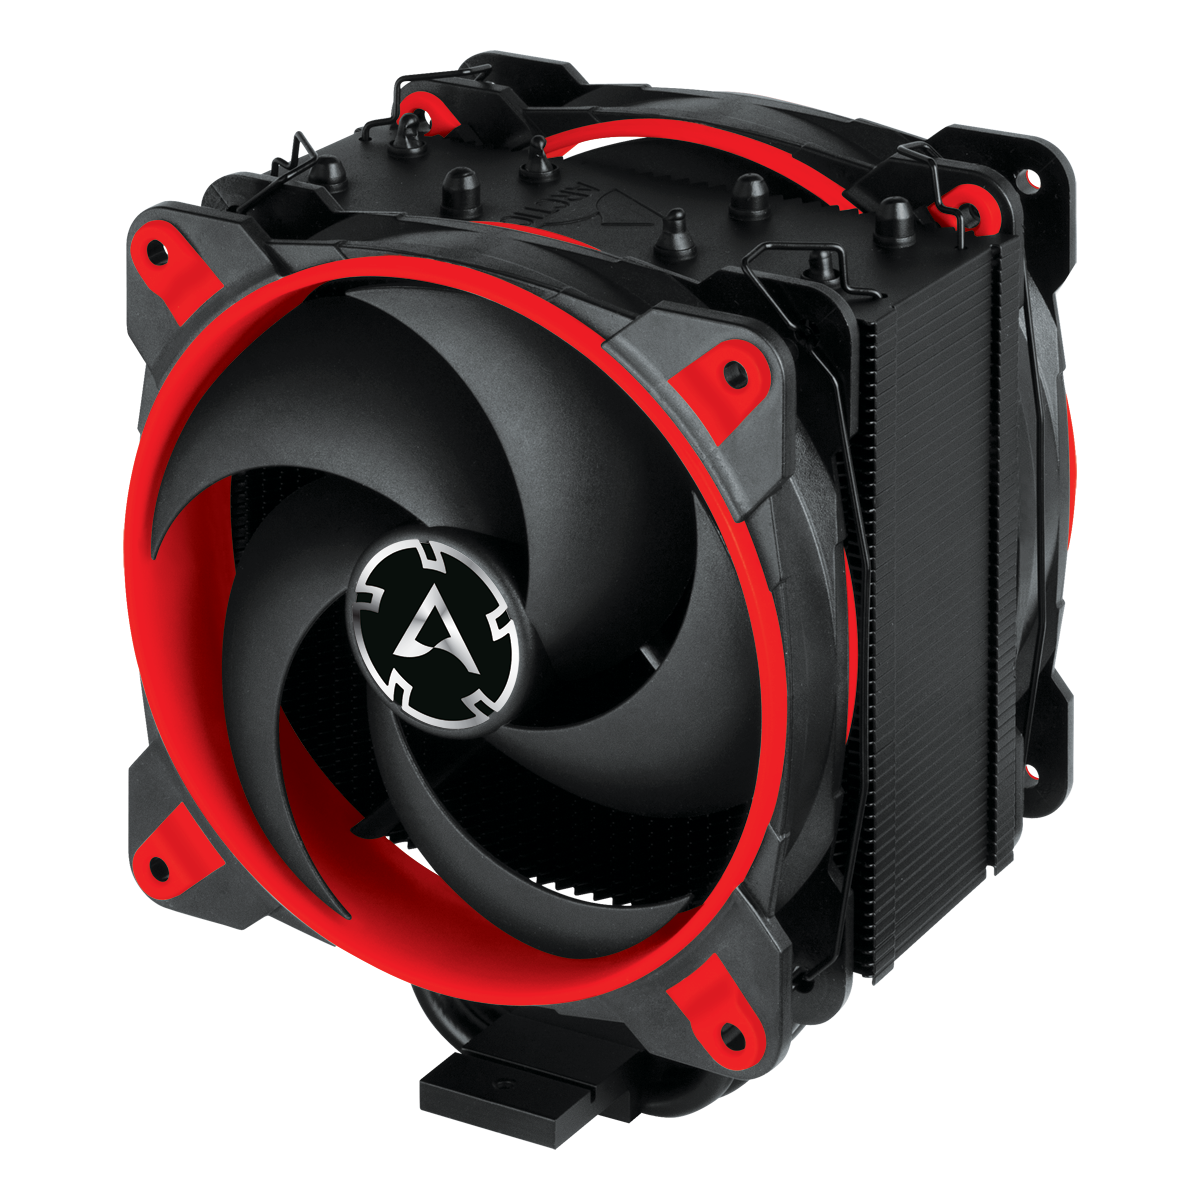 Tower CPU Cooler with Push-Pull Configuration ARCTIC Freezer 34 eSports DUO (Red)